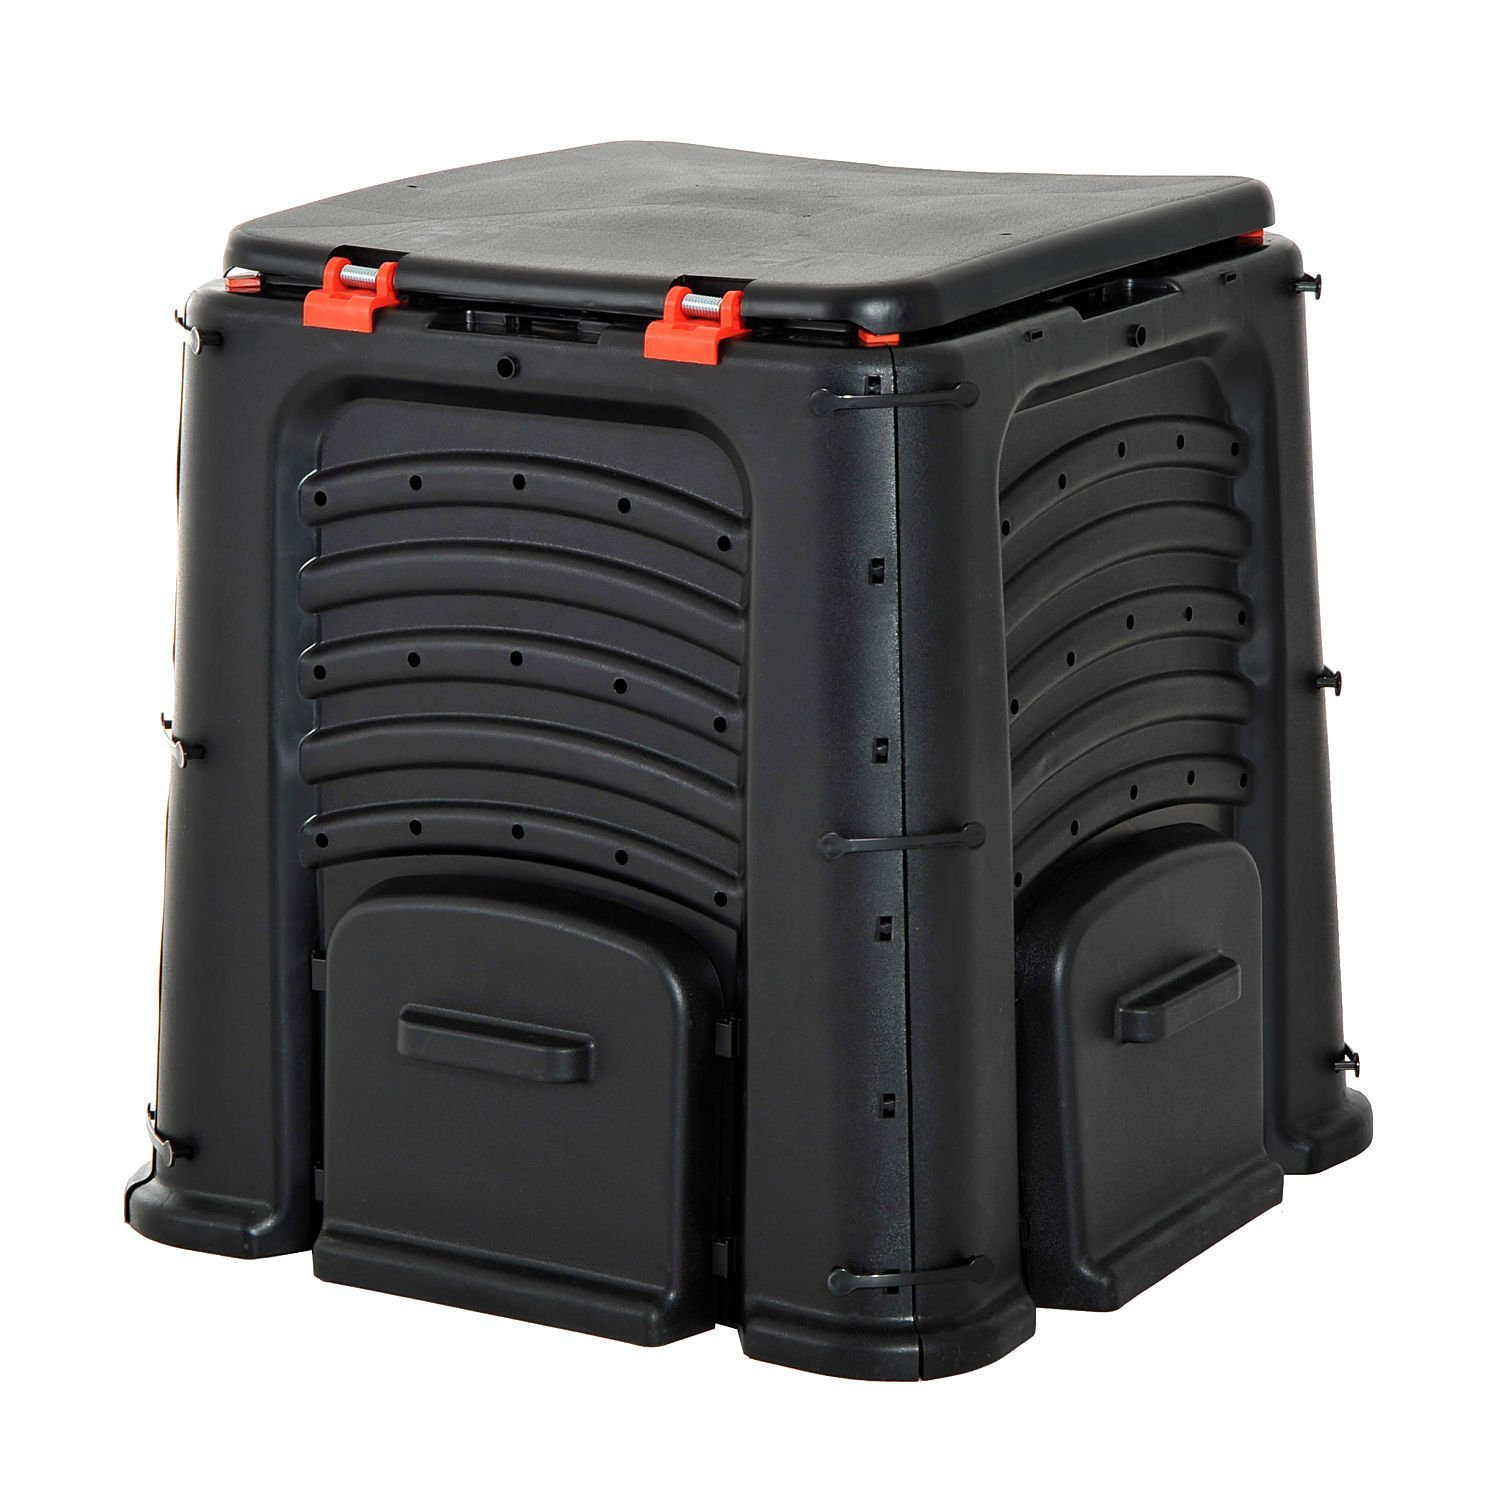 Compost Bin 106 Gallon Garden Yard Waste Food Fertilizer Composter w/ 4 Door